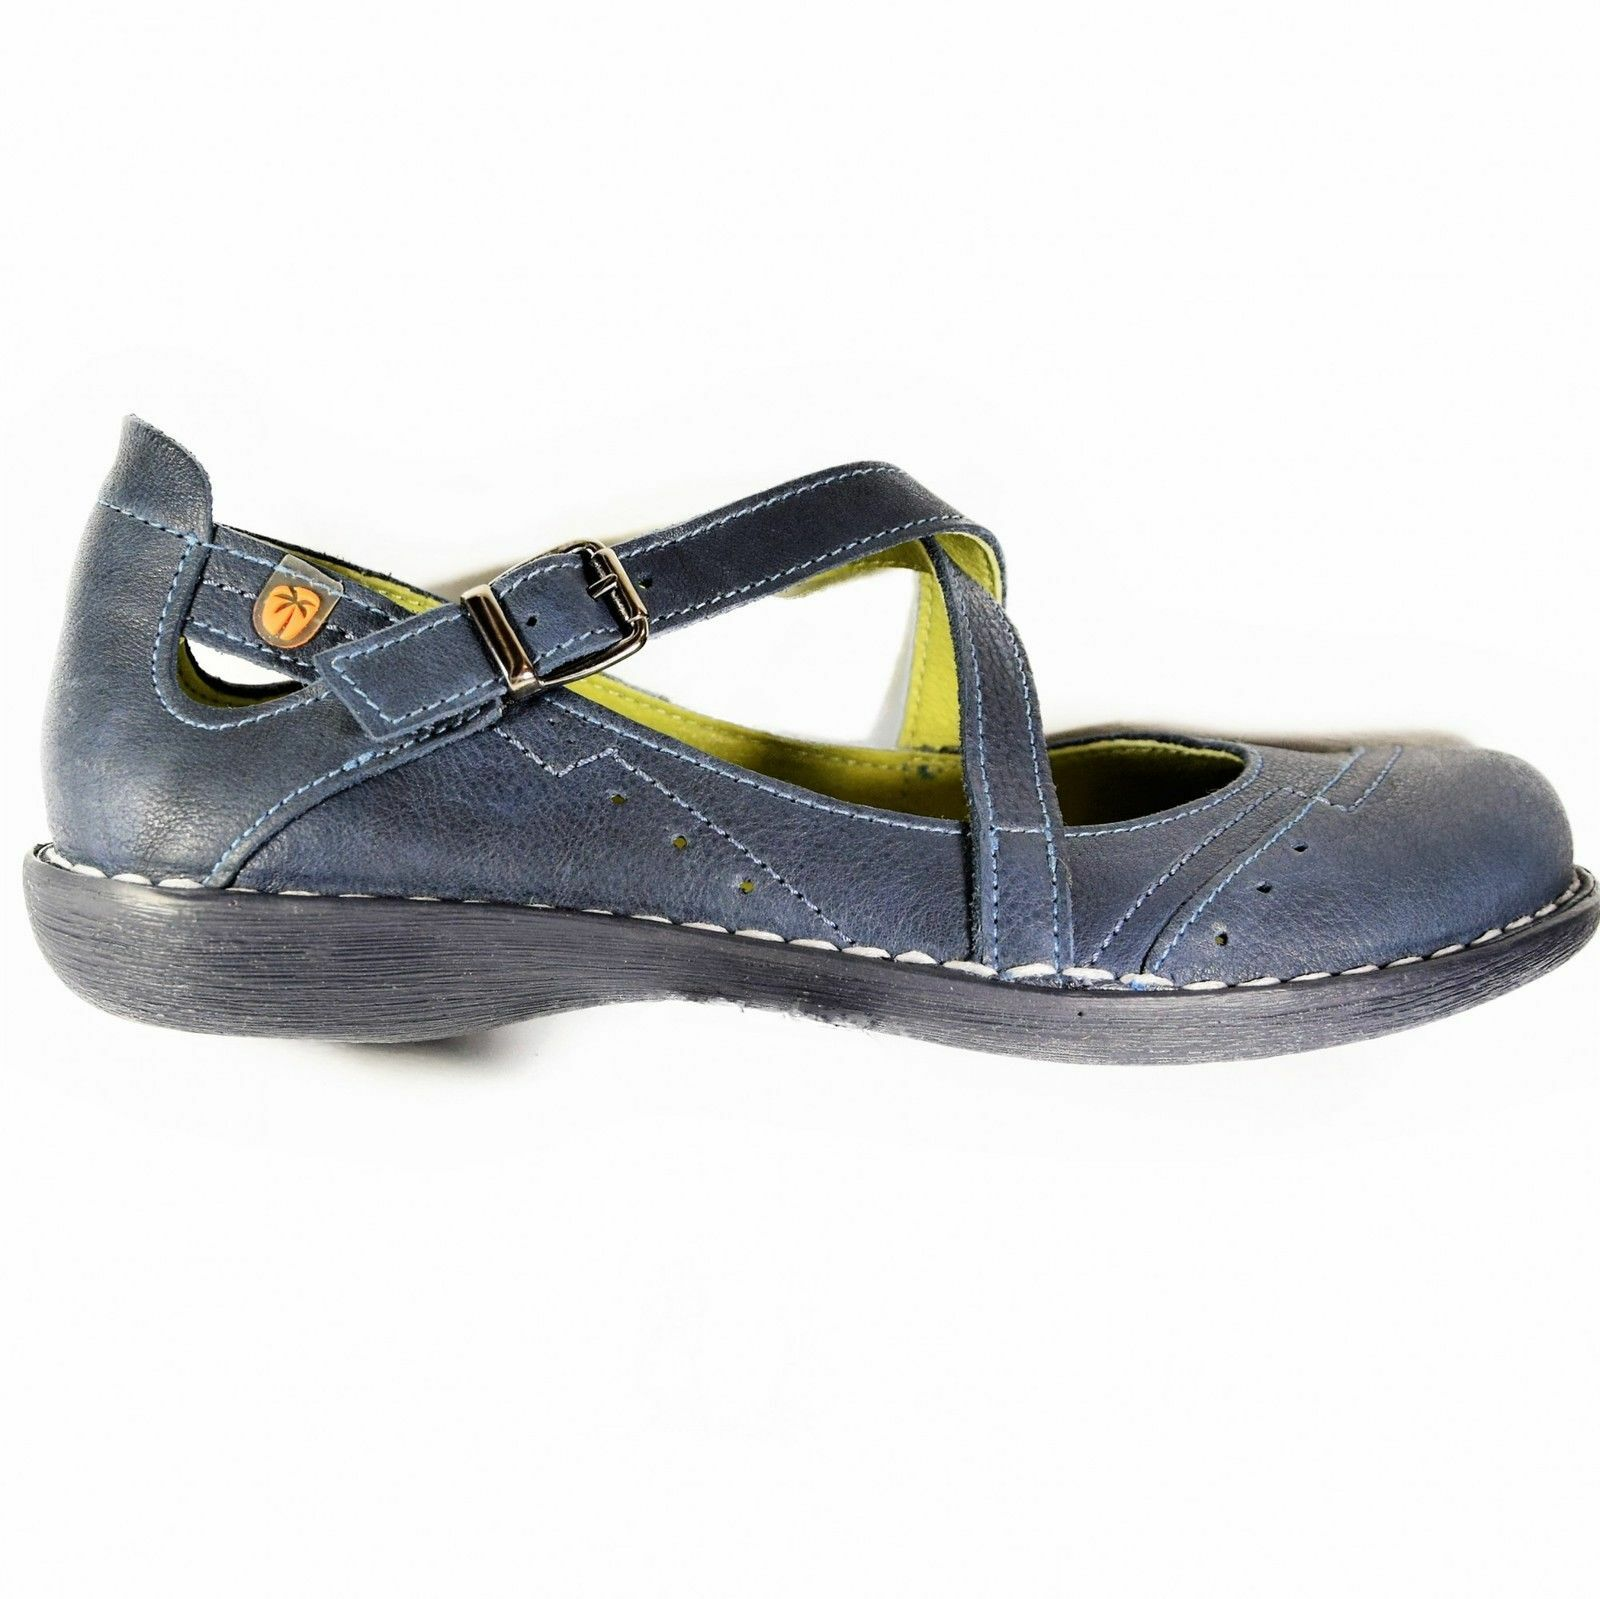 JUNGLA Schuhe Damens'S MARY JANES Blau BALLERINAS SPAIN FLATS 100% LEATHER Damenschuhe SPAIN BALLERINAS 0bc586